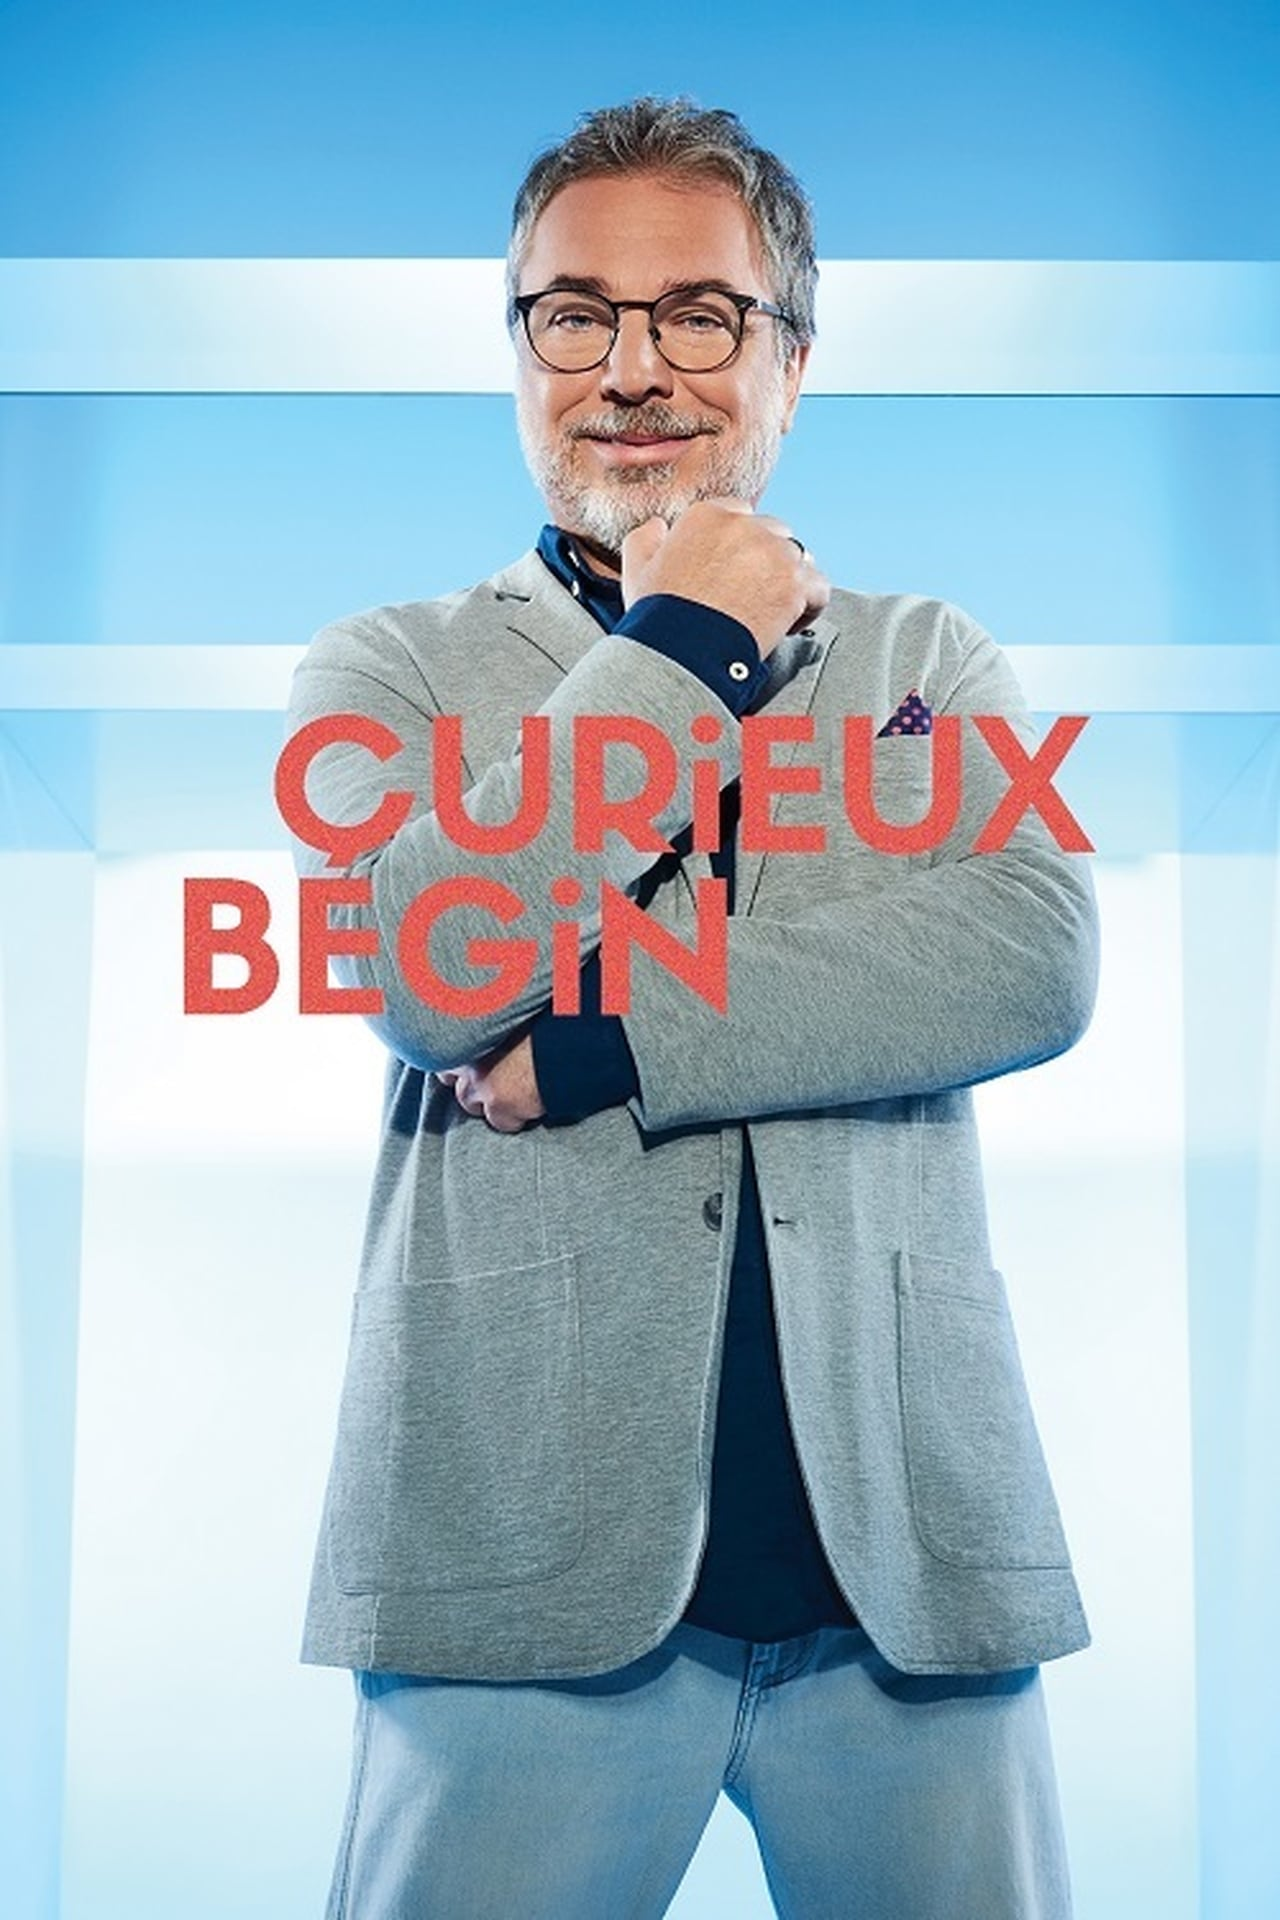 Putlocker Curieux Bégin Season 9 (2016)